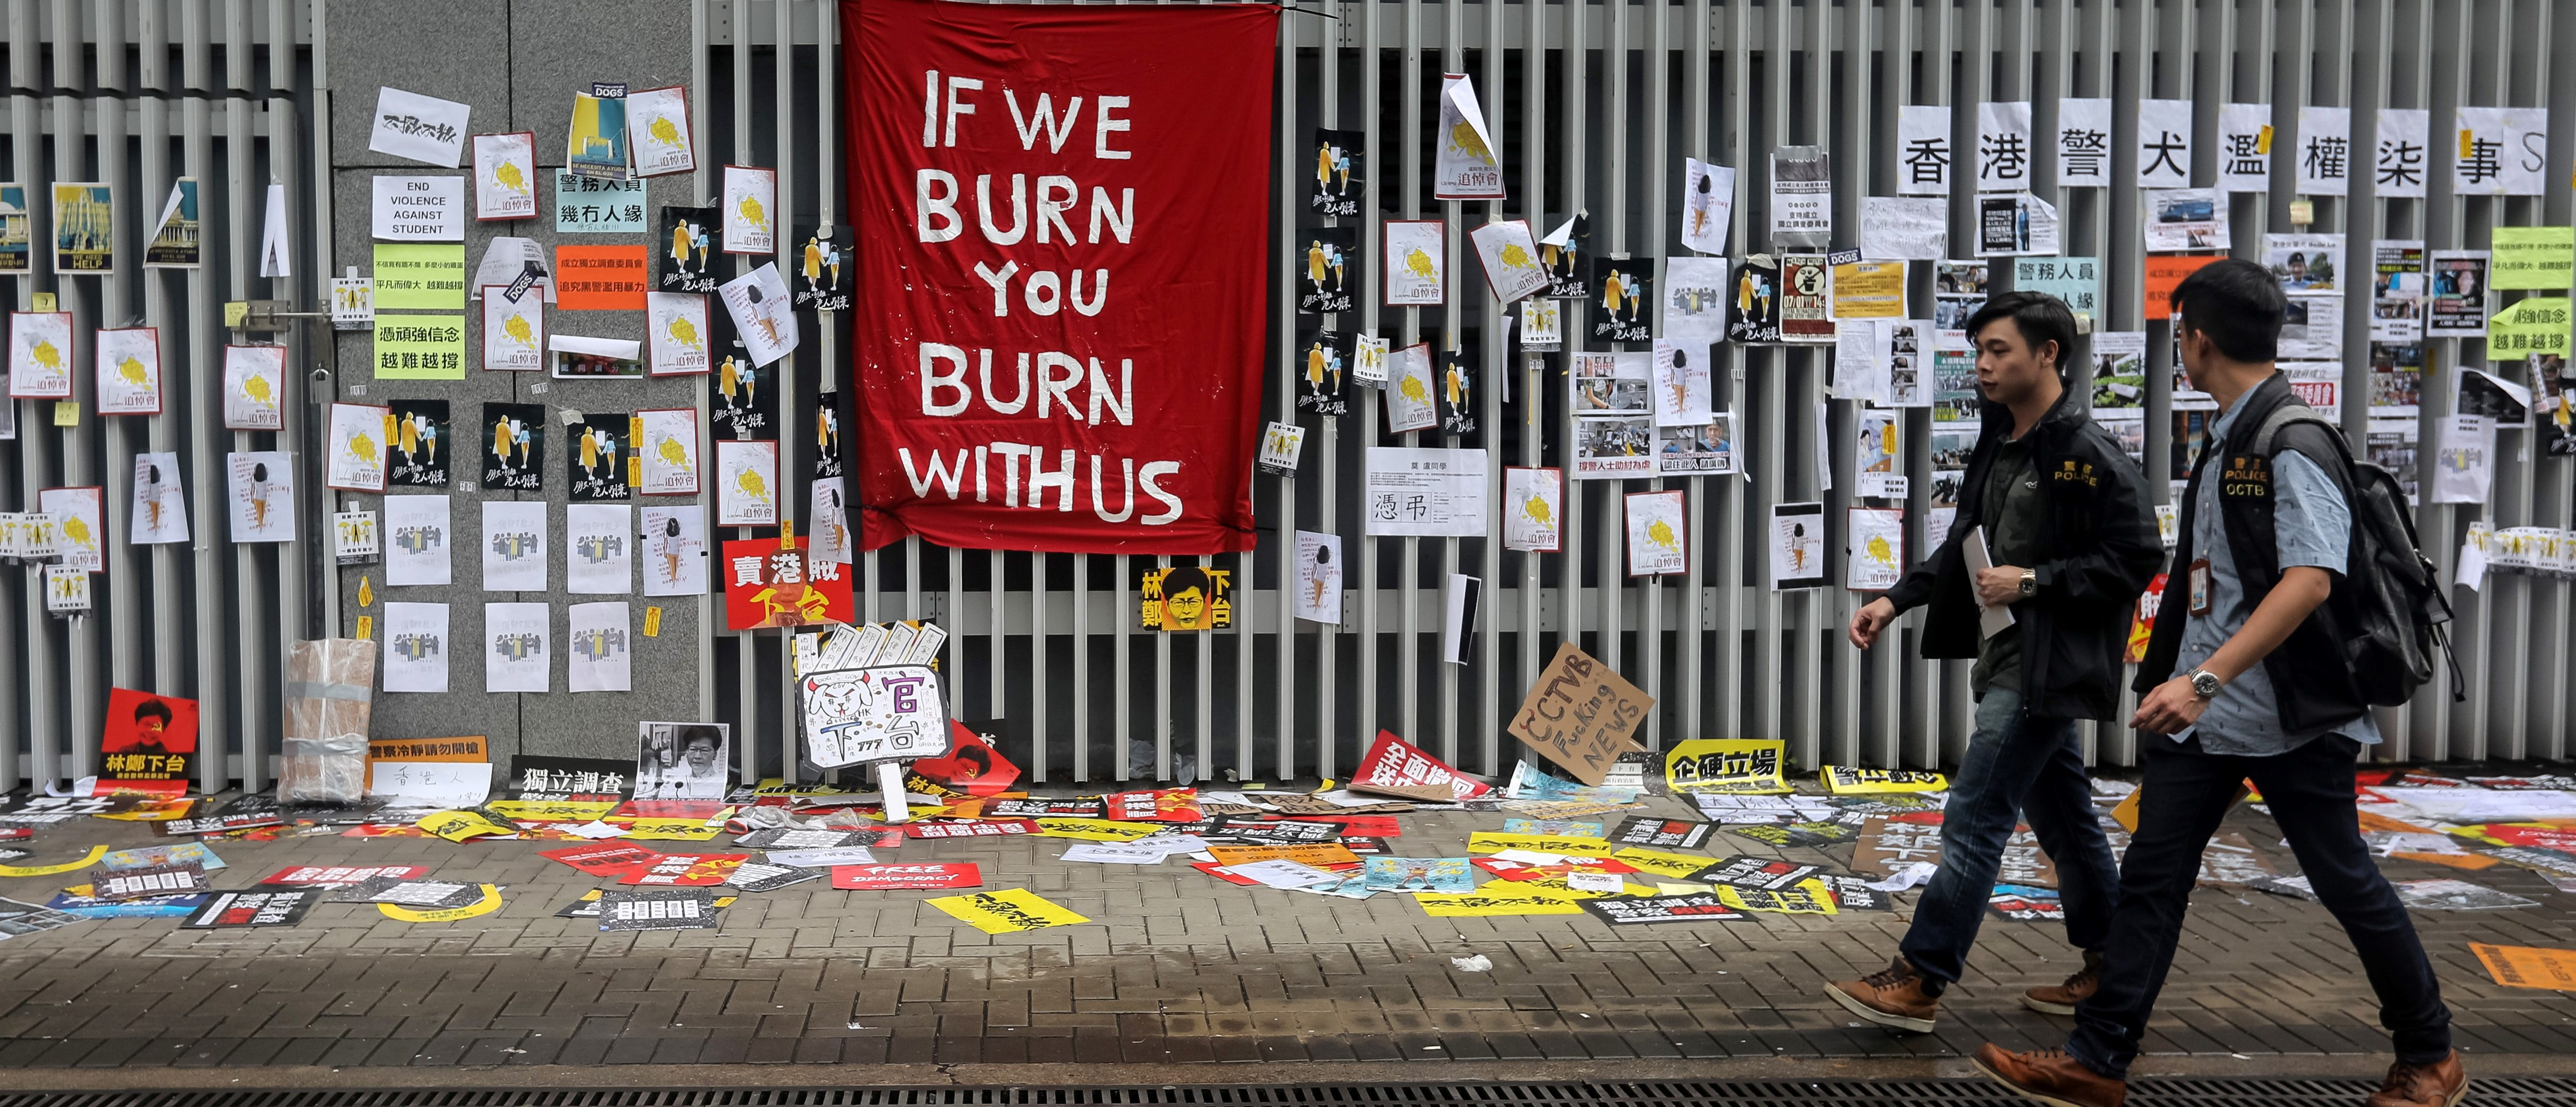 """Police walk past signs and posters outside the government headquarters in Hong Kong on July 2, 2019, a day after protesters broke into the building. - Hong Kong's leader on July 2 condemned """"the extreme use of violence"""" by masked protesters who stormed and ransacked the city's legislature in an unprecedented challenge to Beijing's authority. (VIVEK PRAKASH/AFP/Getty Images)"""